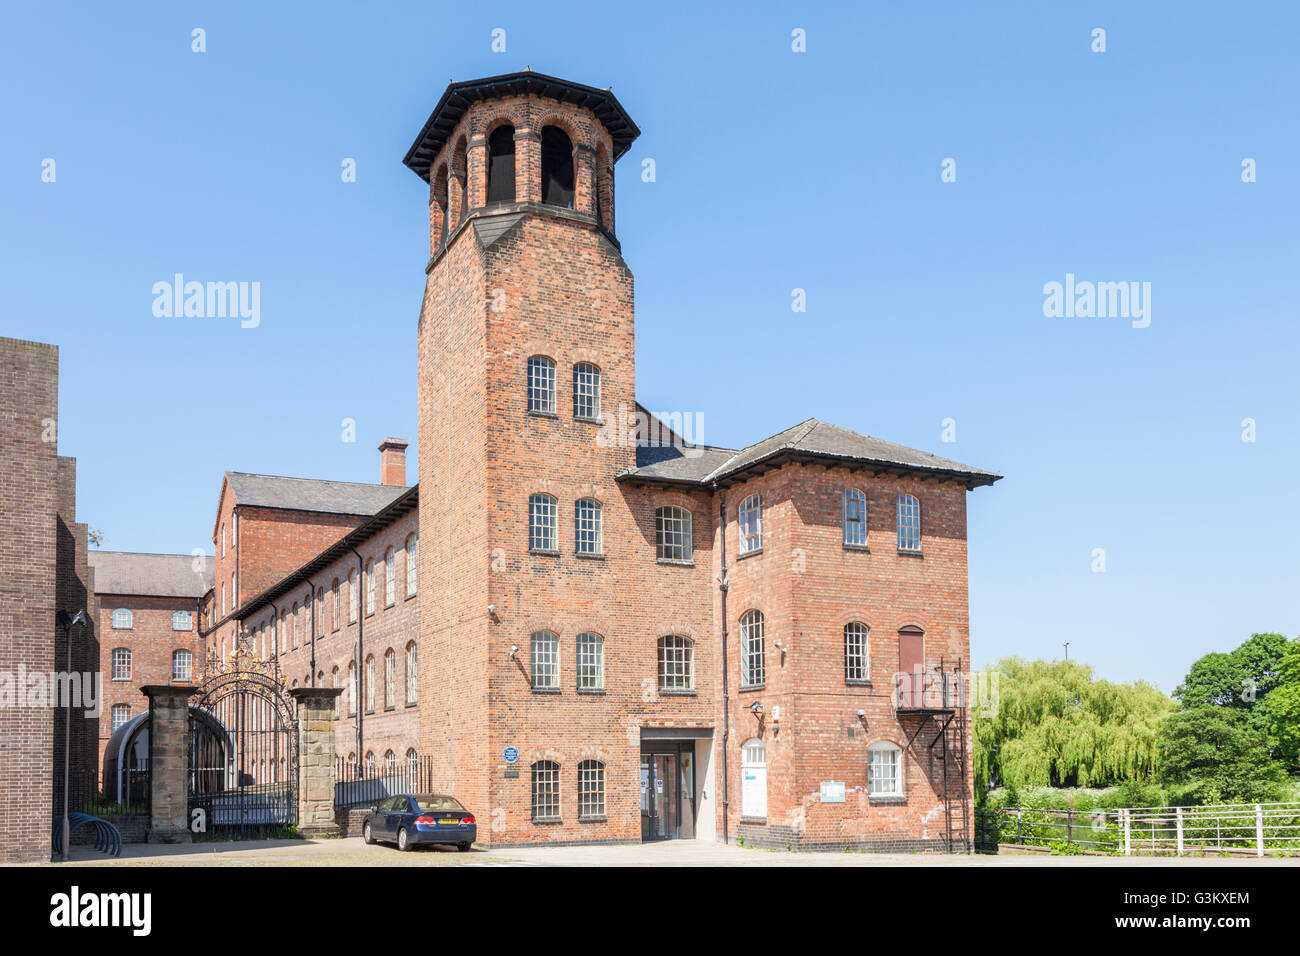 The Silk Mill, Derby, Derbyshire, England, UK. A UNESCO World Heritage  Site and part of the Derwent Valley Mills - Stock Image